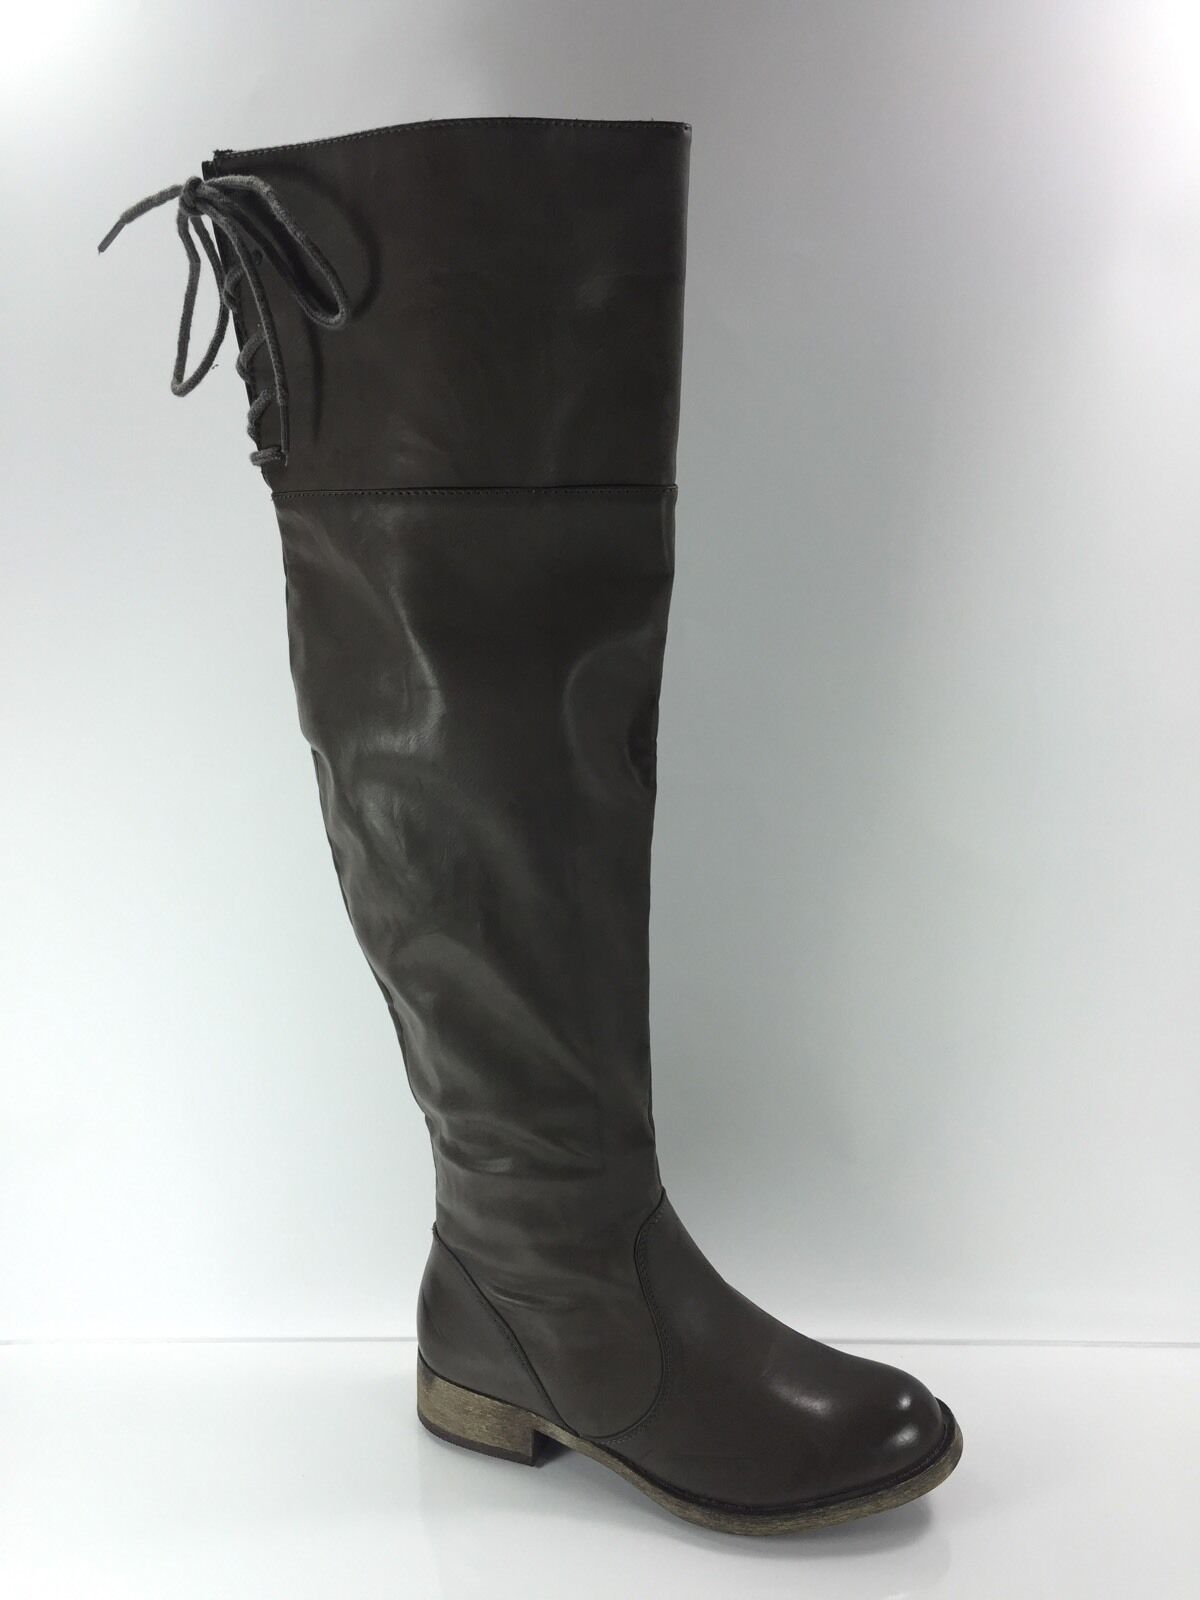 MIA Womens Pewter Taupe Over The Knee Boots 7 M